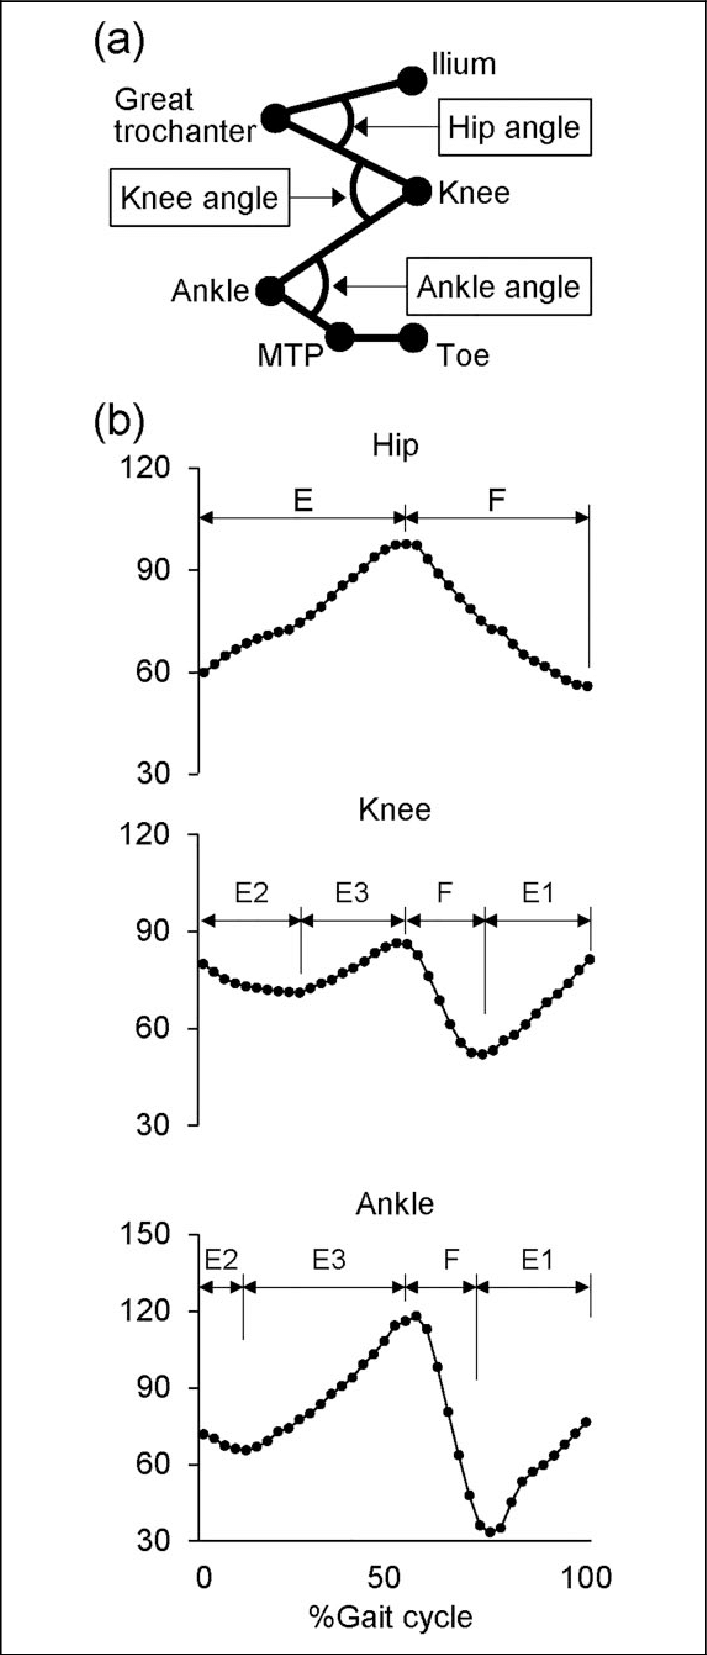 Joint angles and gait cycle phases. (a) Definitions of the